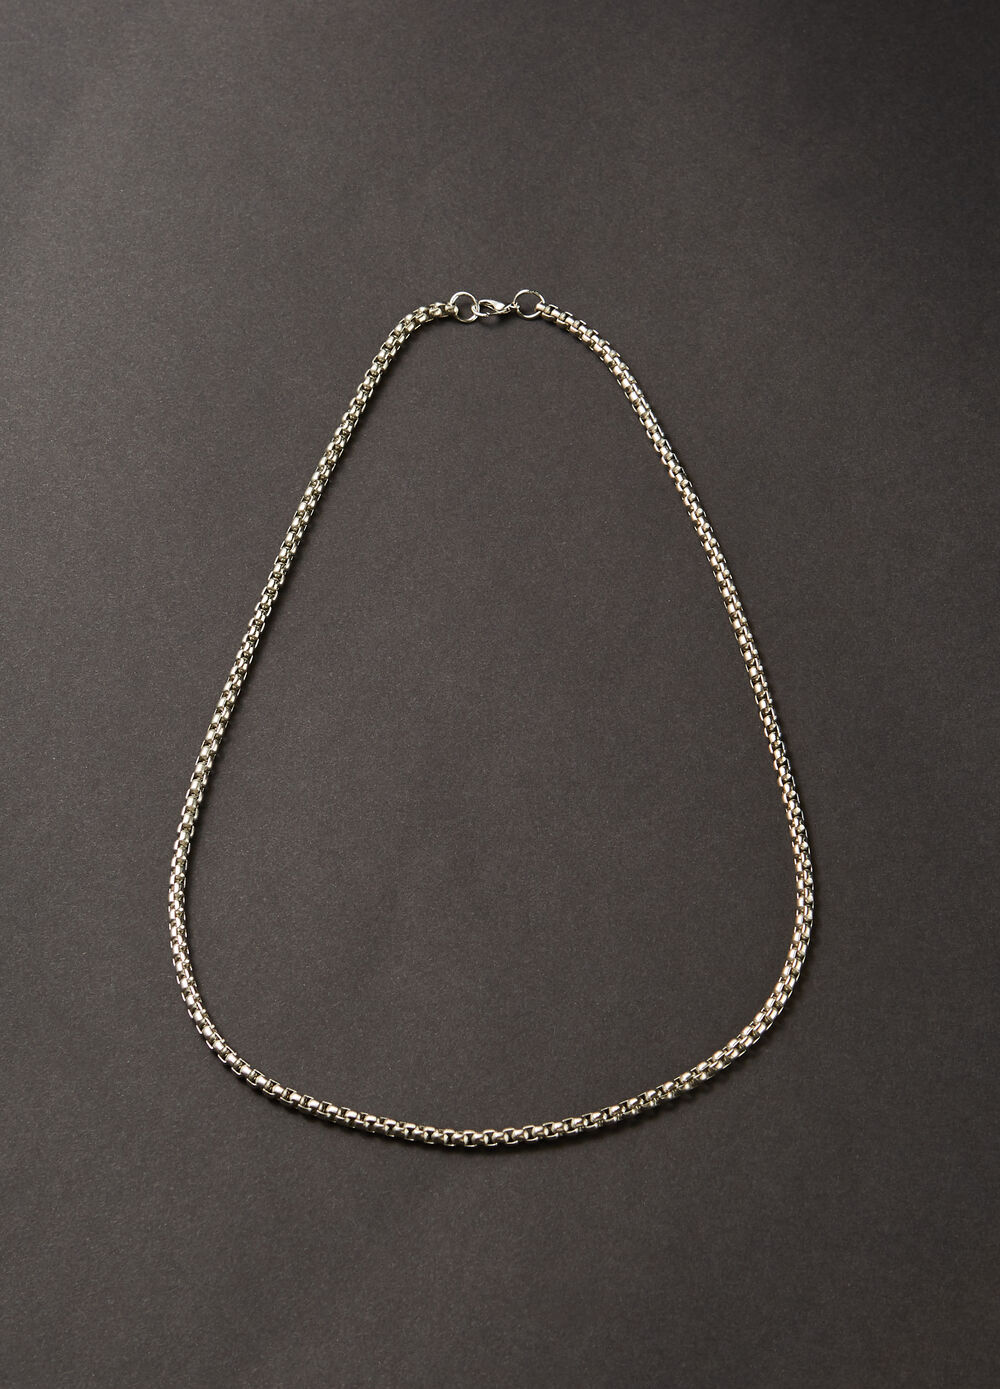 Plaited metal necklace